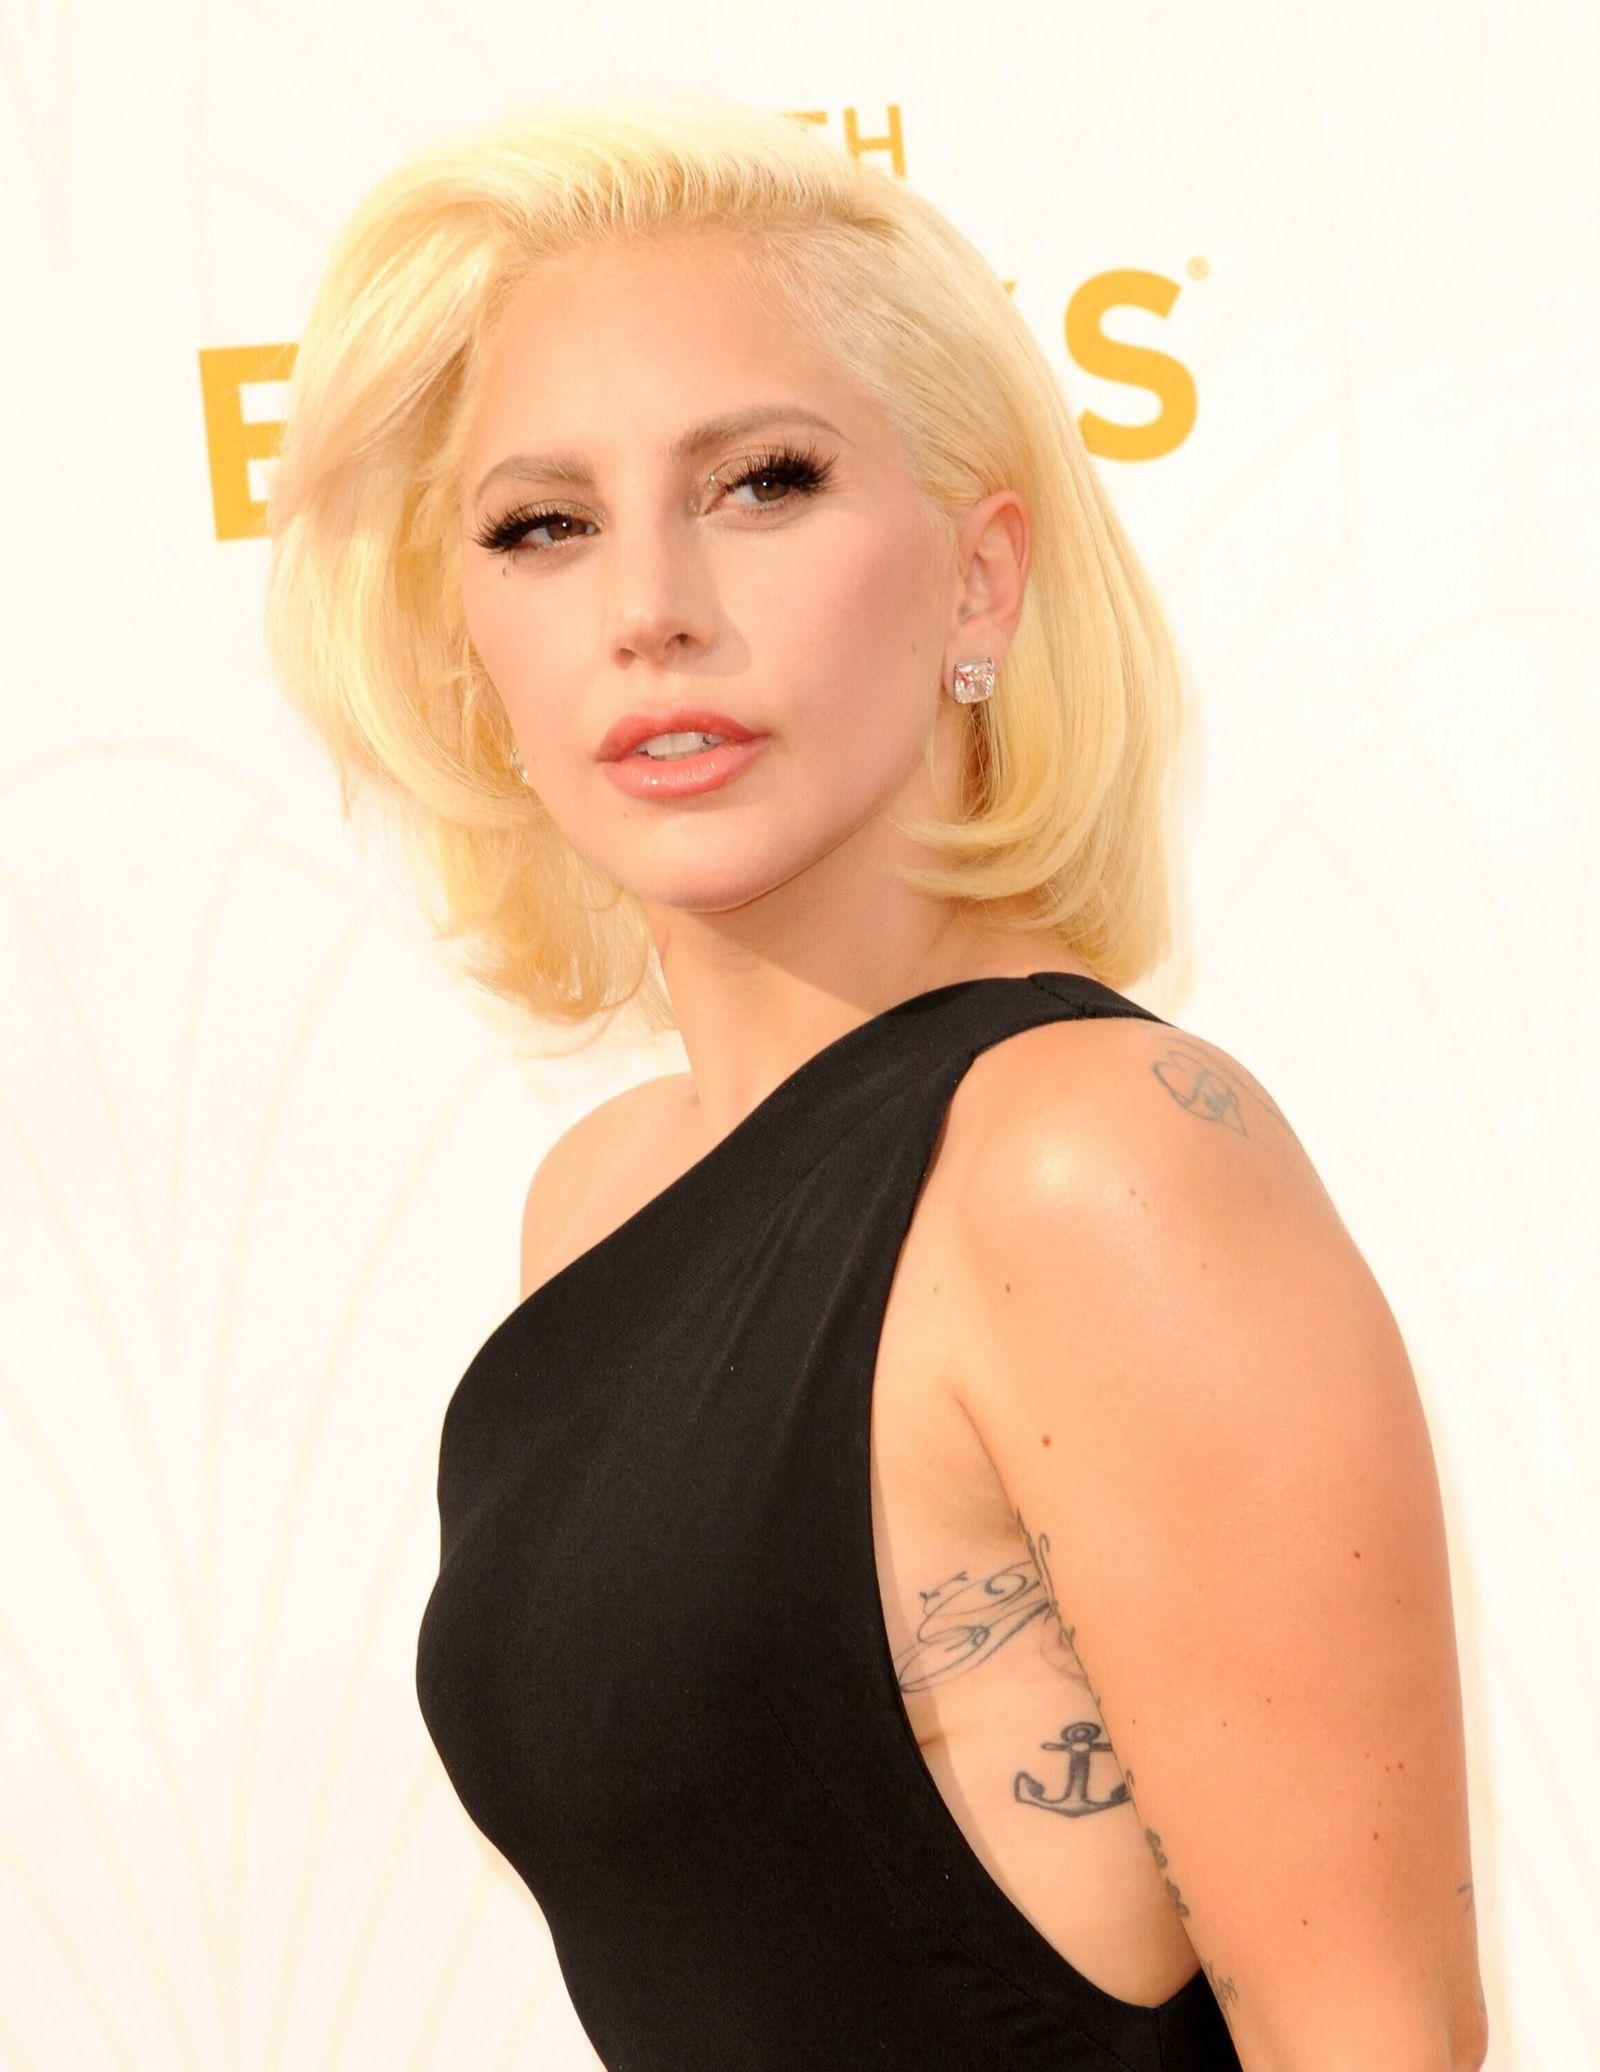 Lady Gaga at arrivals for 67th Primetime Emmy Awards 2015 - Arrivals 2, The Microsoft Theater (formerly Nokia Theatre L.